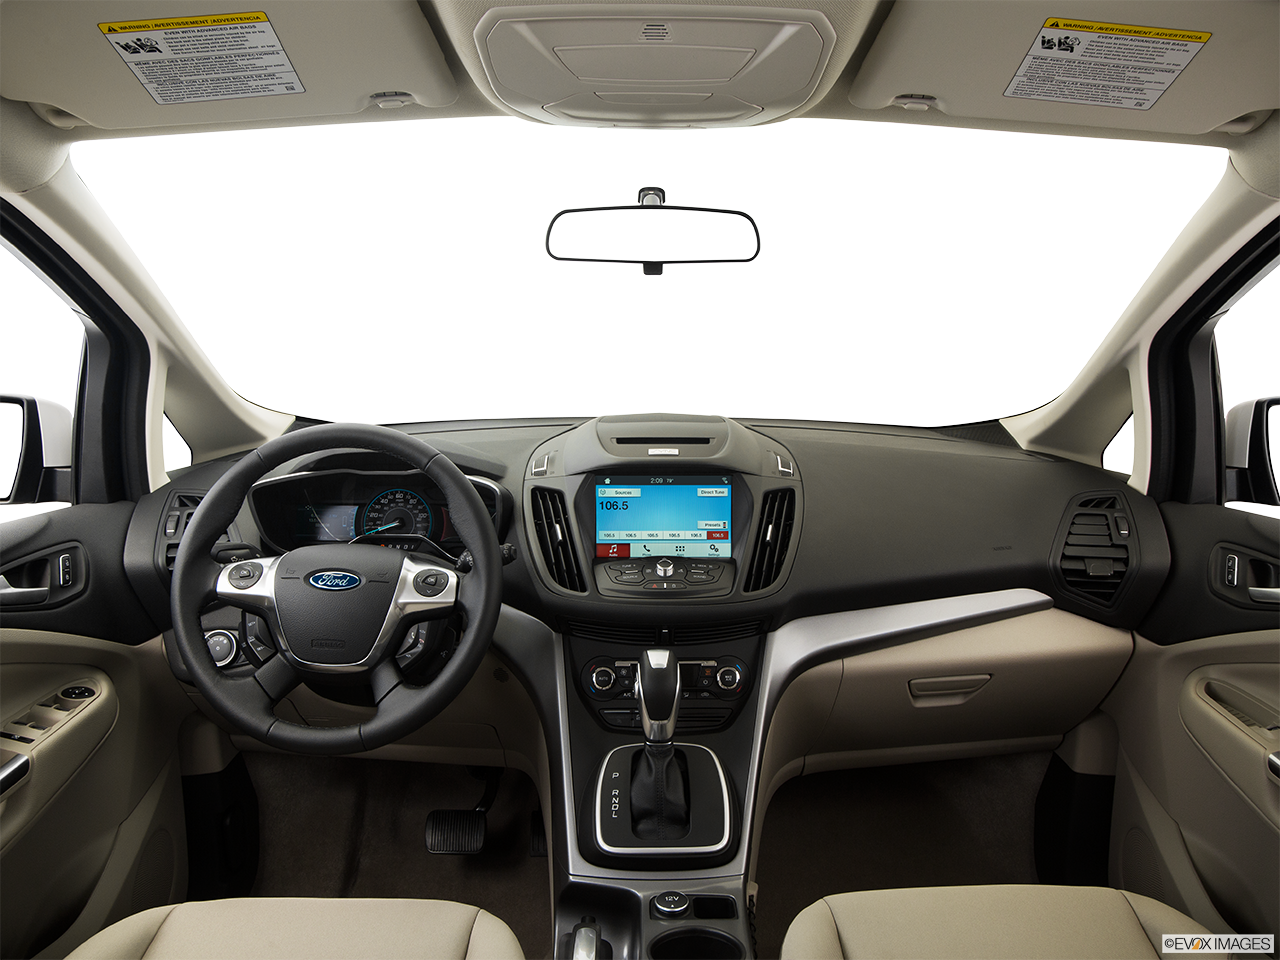 Interior View Of 2016 Ford C-Max in San Bernardino County